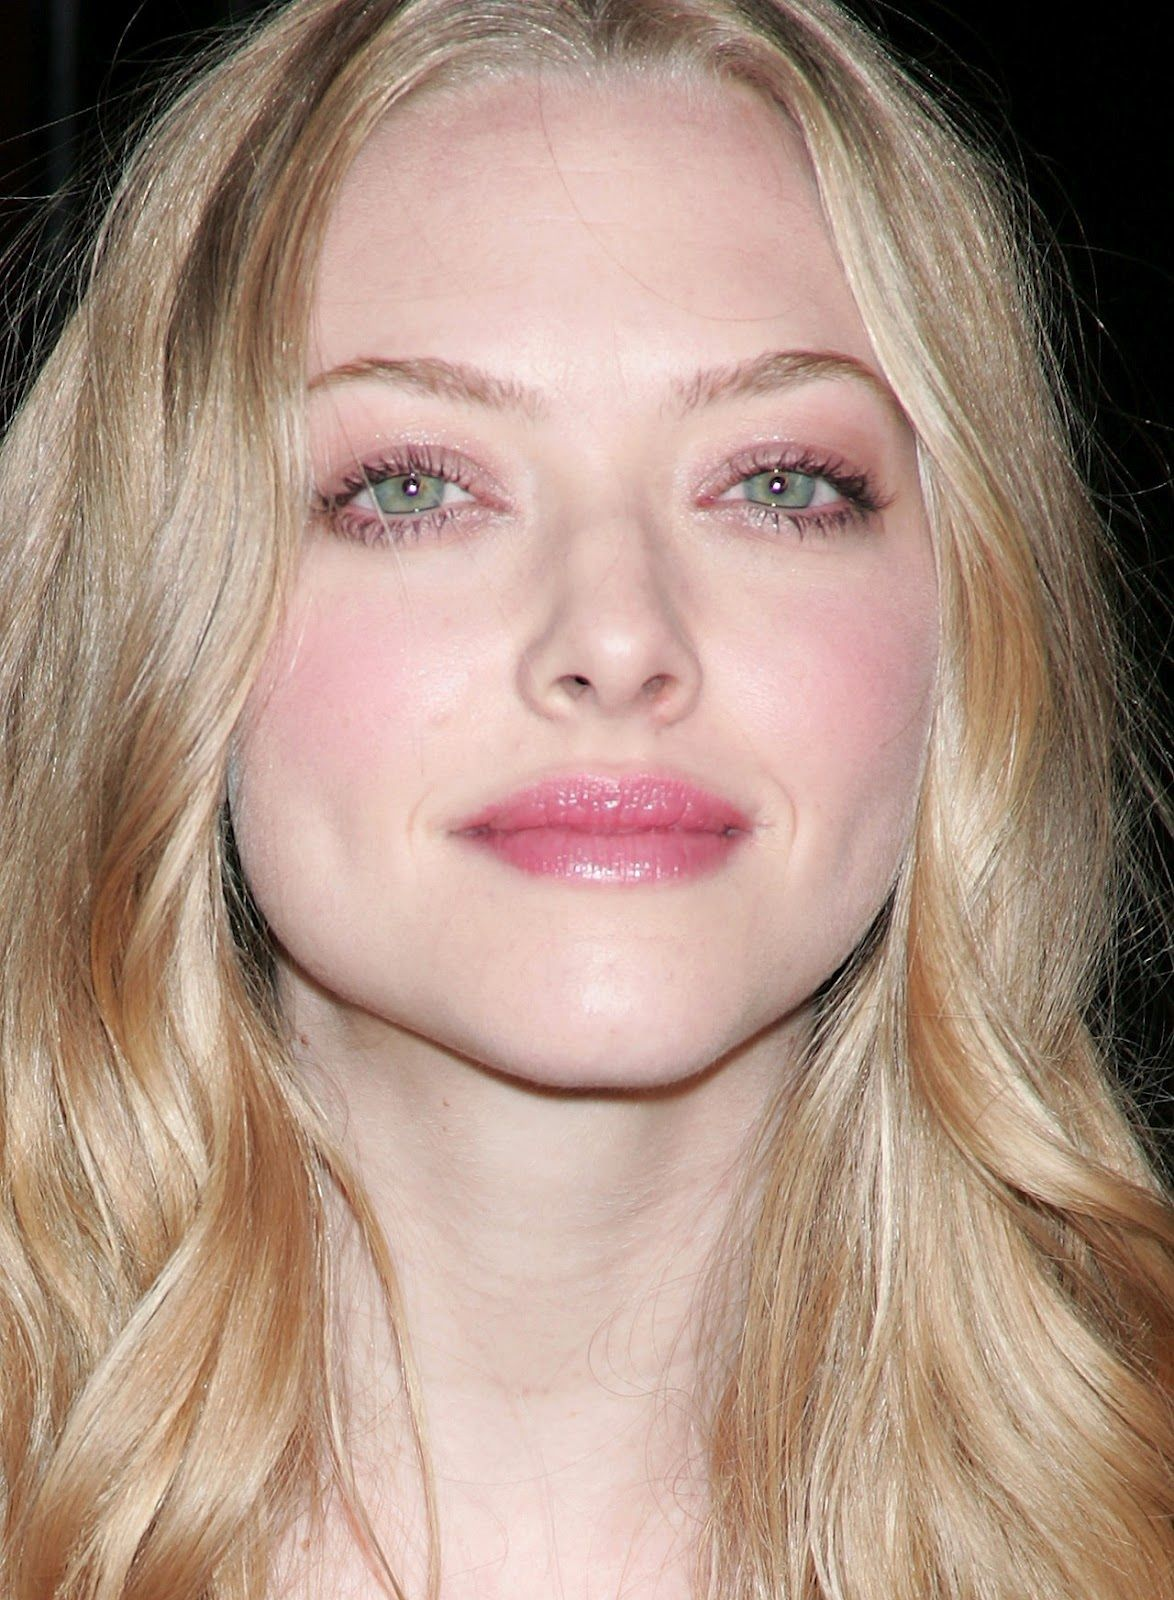 makeup for blue eyes and blonde hair and fair skin